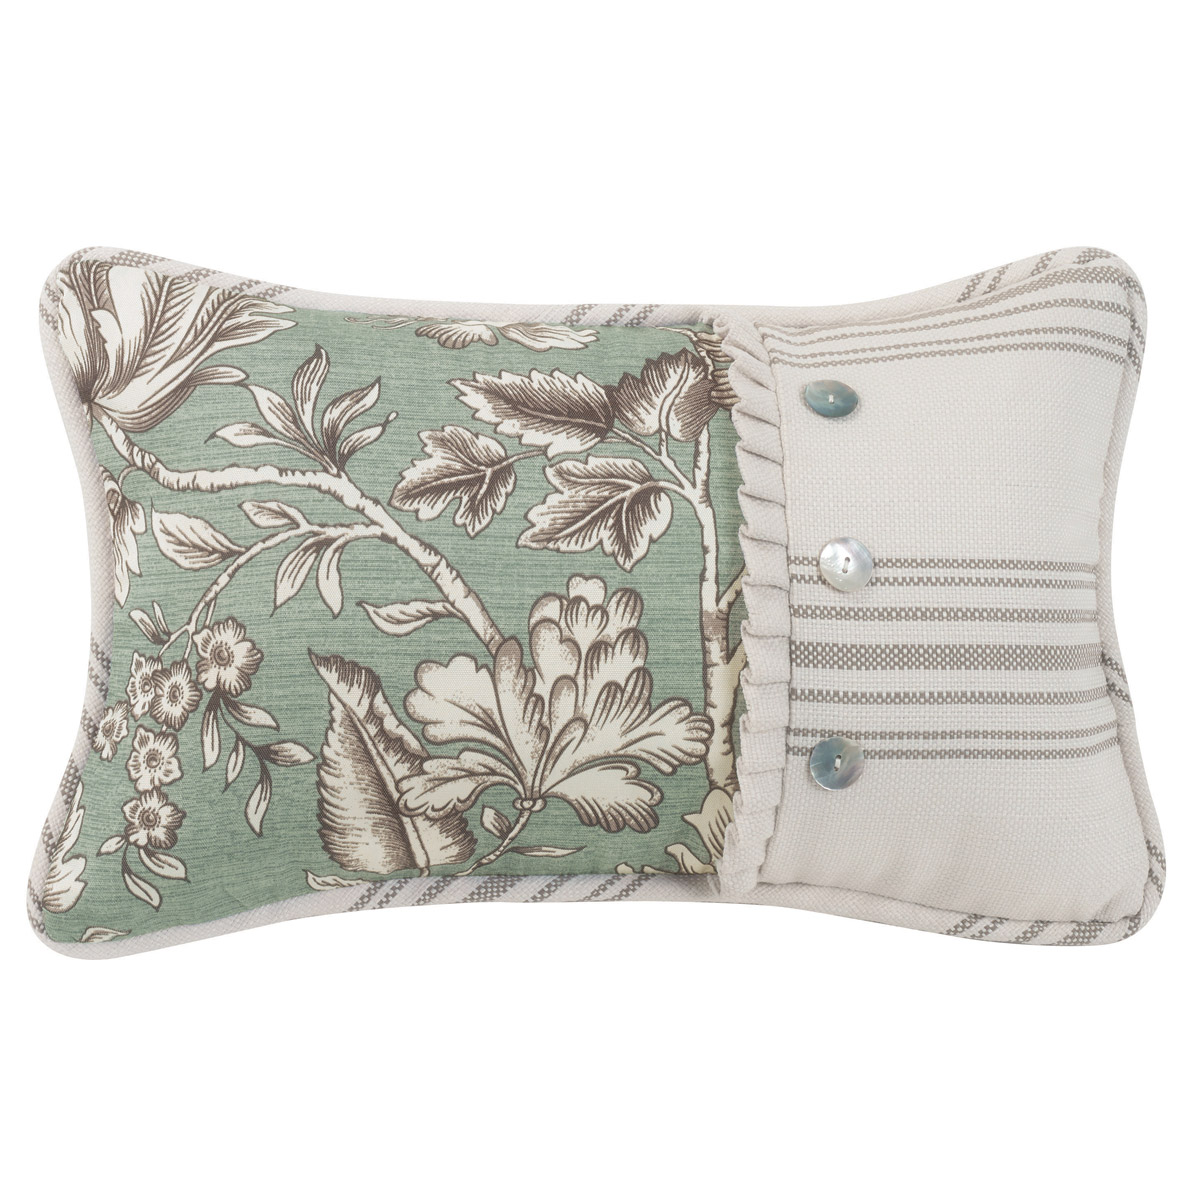 Gramercy Printed Floral Pieced Accent Pillow